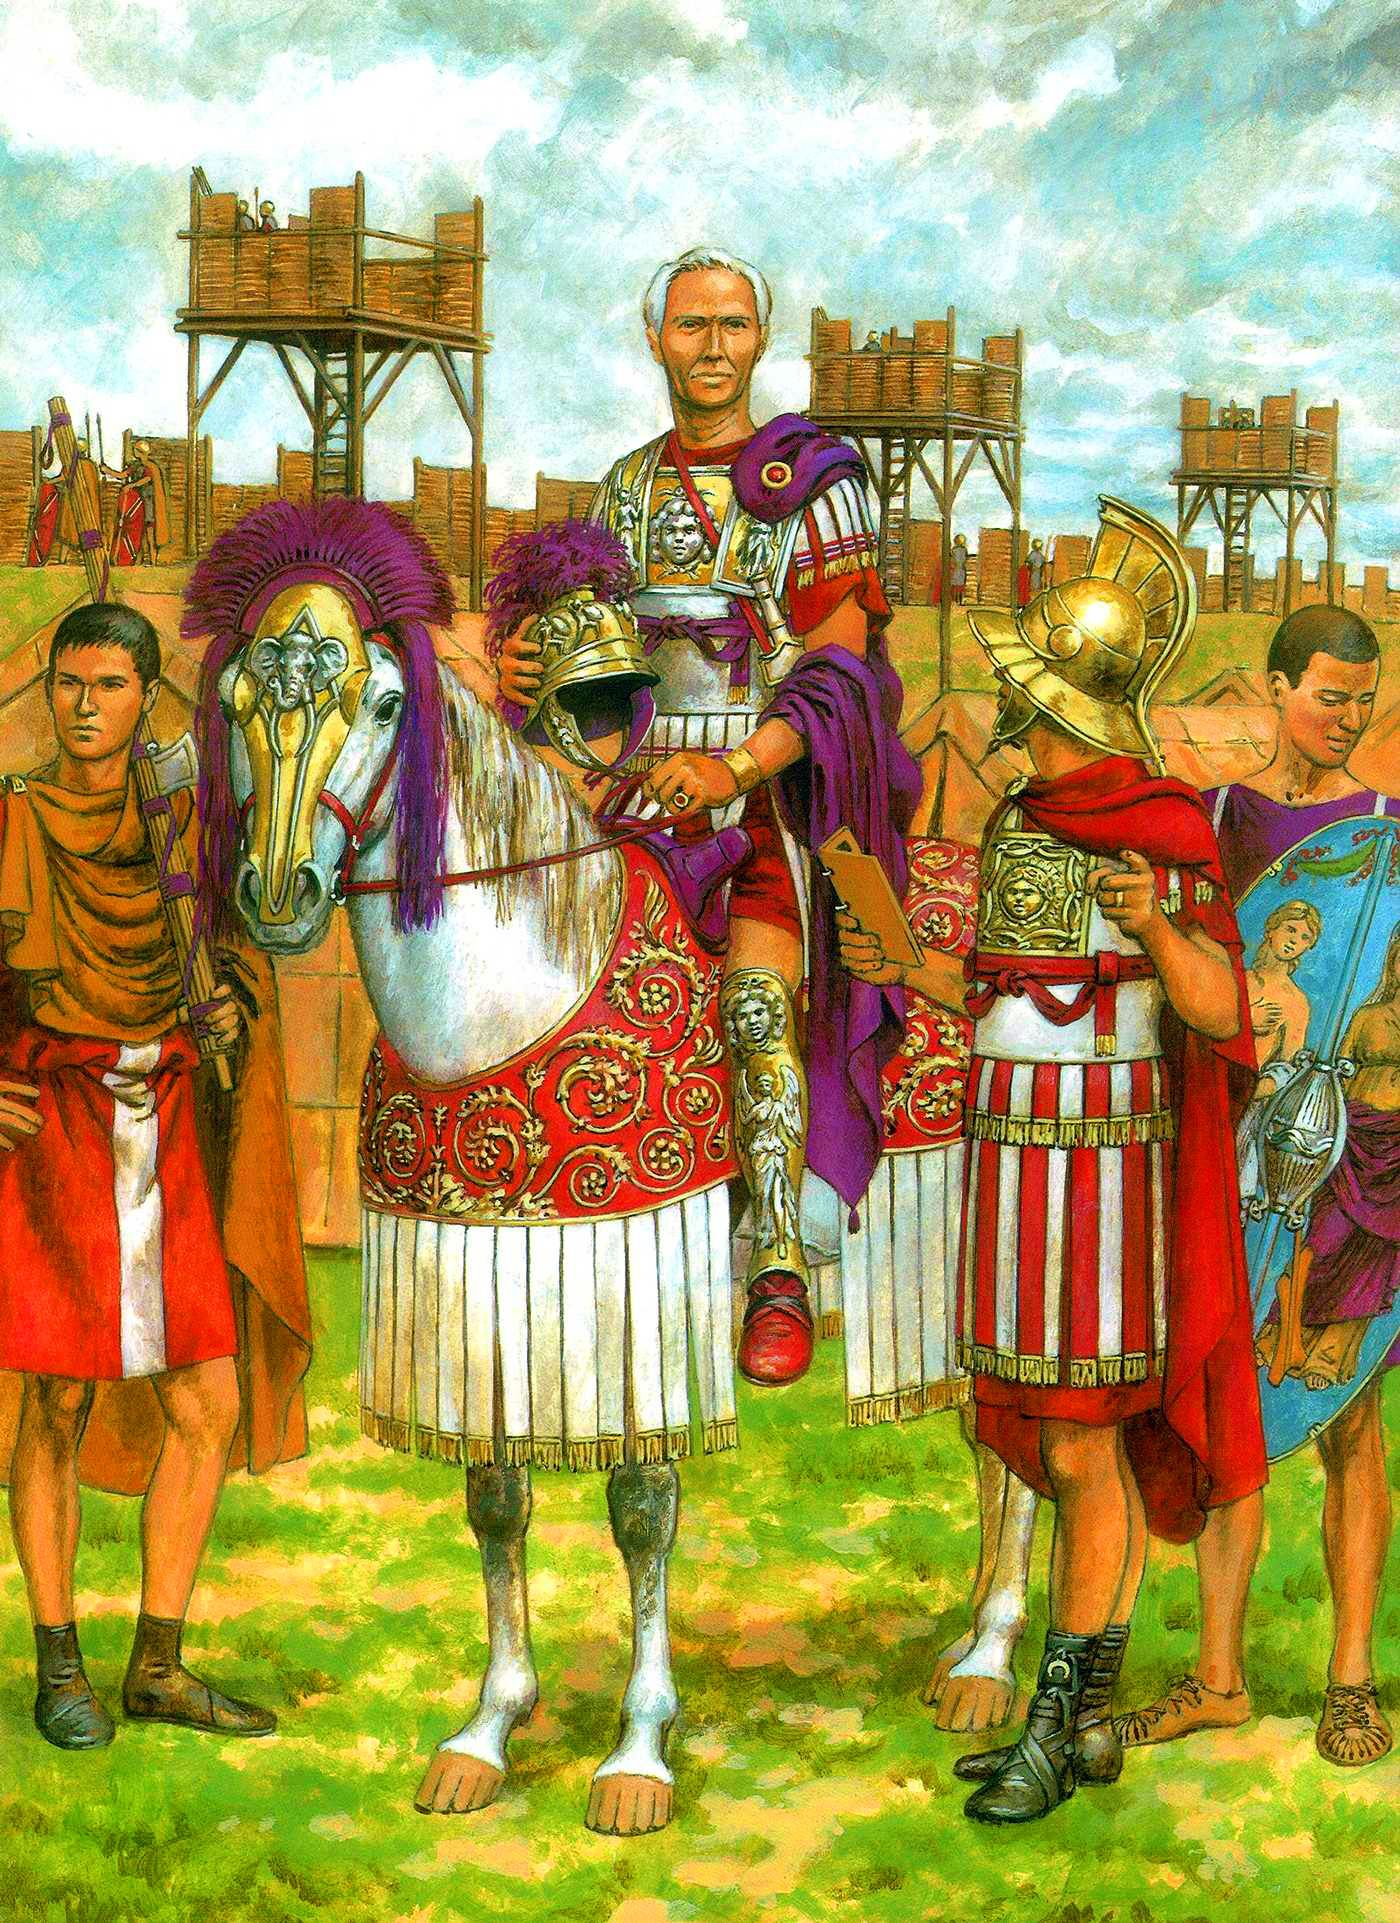 Julius Caesar With His Legionaries At A Fortified Military